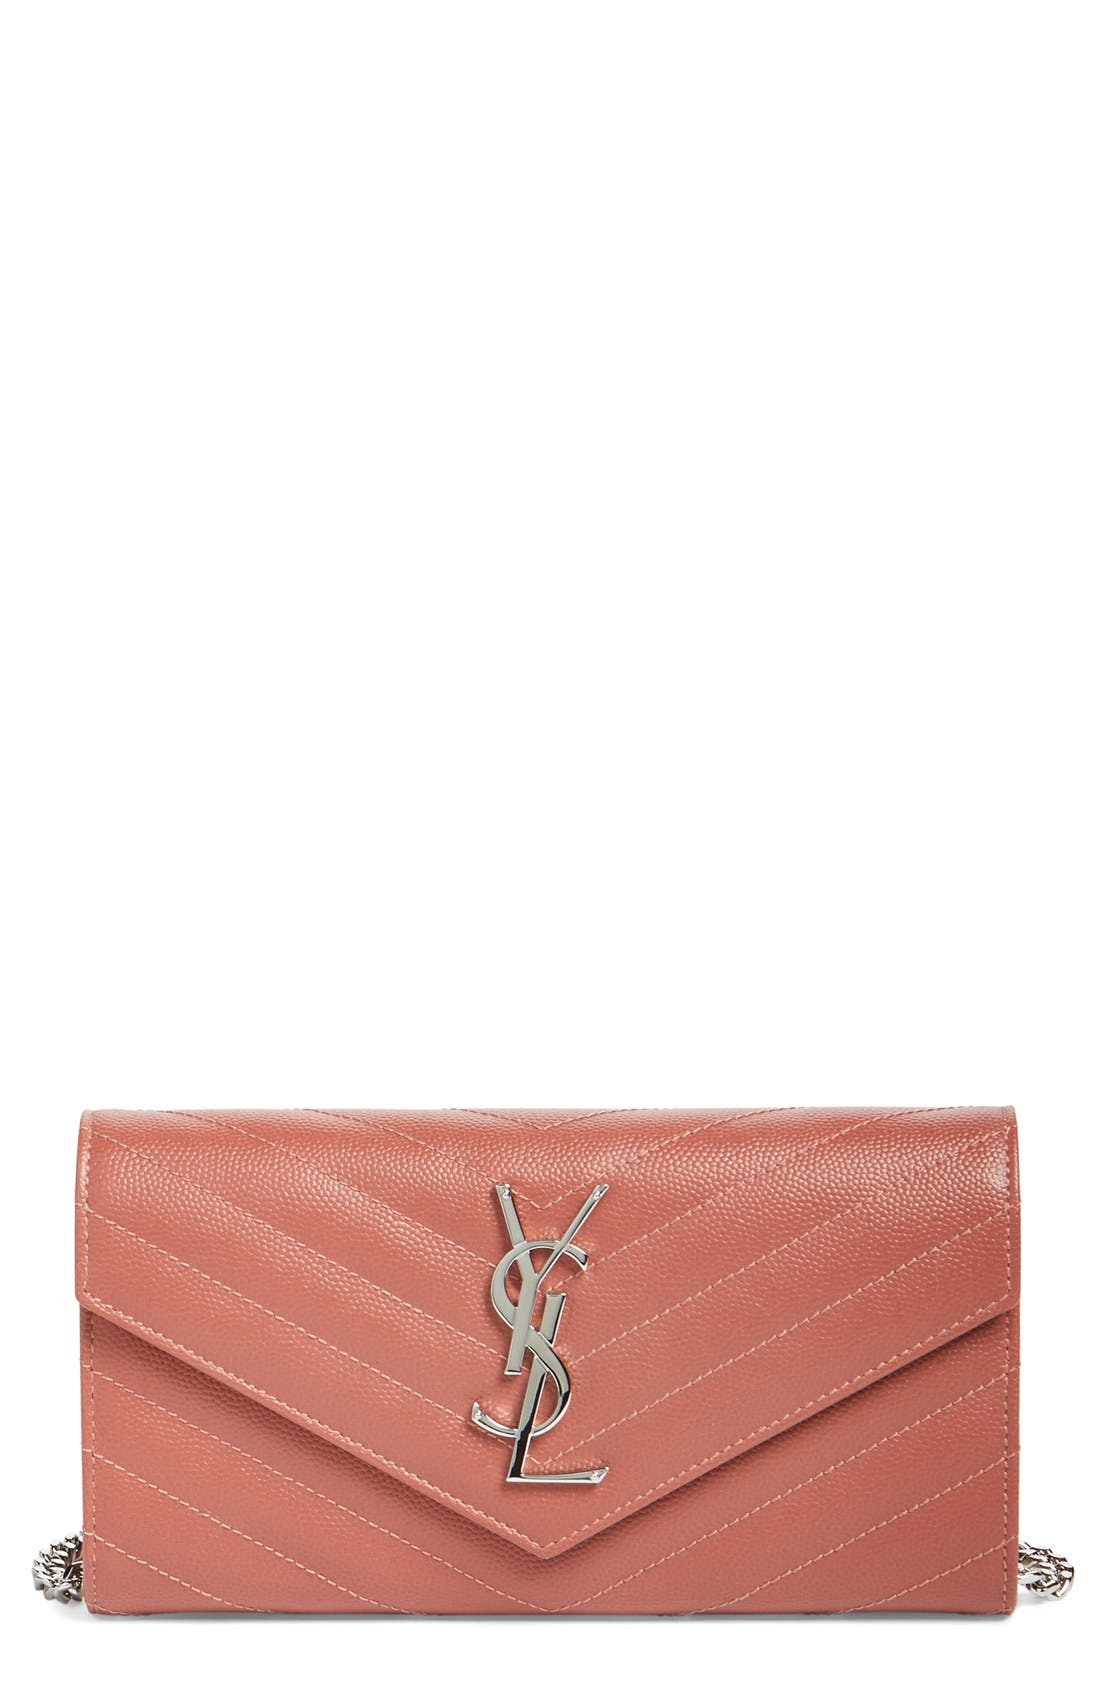 Main Image - Saint Laurent 'Small Monogram' Calfskin Wallet on a Chain